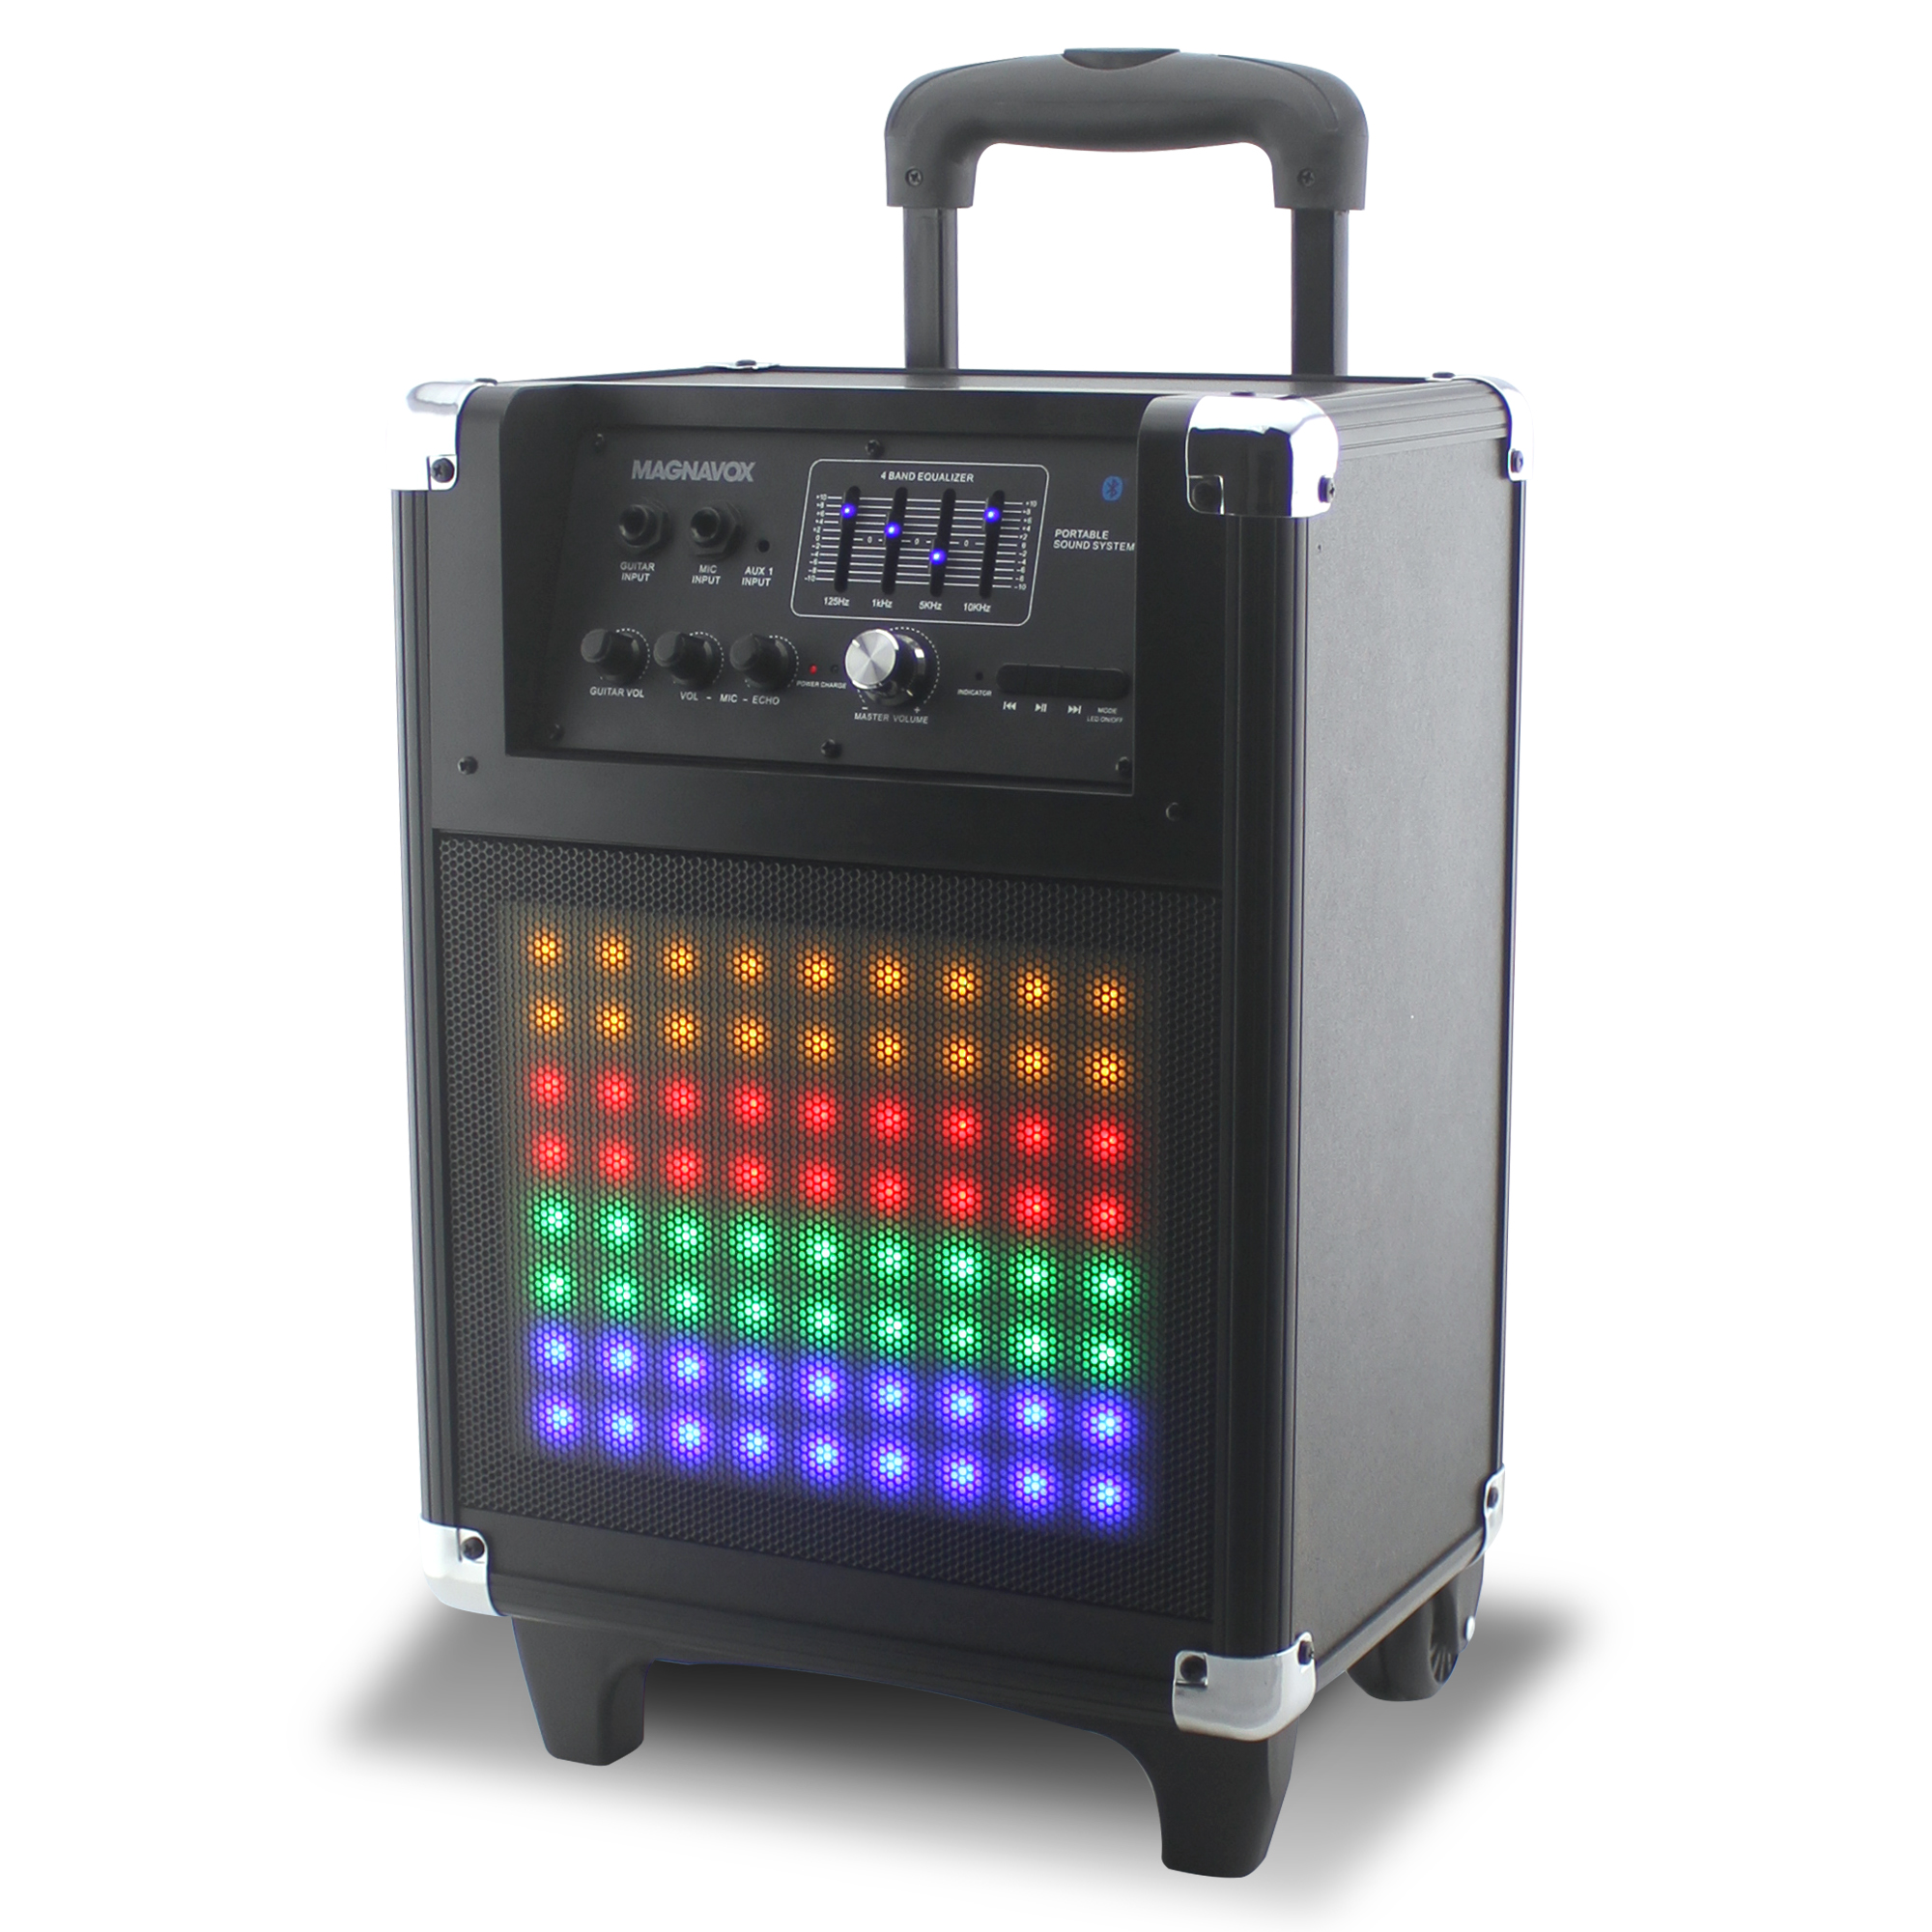 Magnavox Rolling Portable Speaker System with Bluetooth, FM, and Color changing Lights MHT825